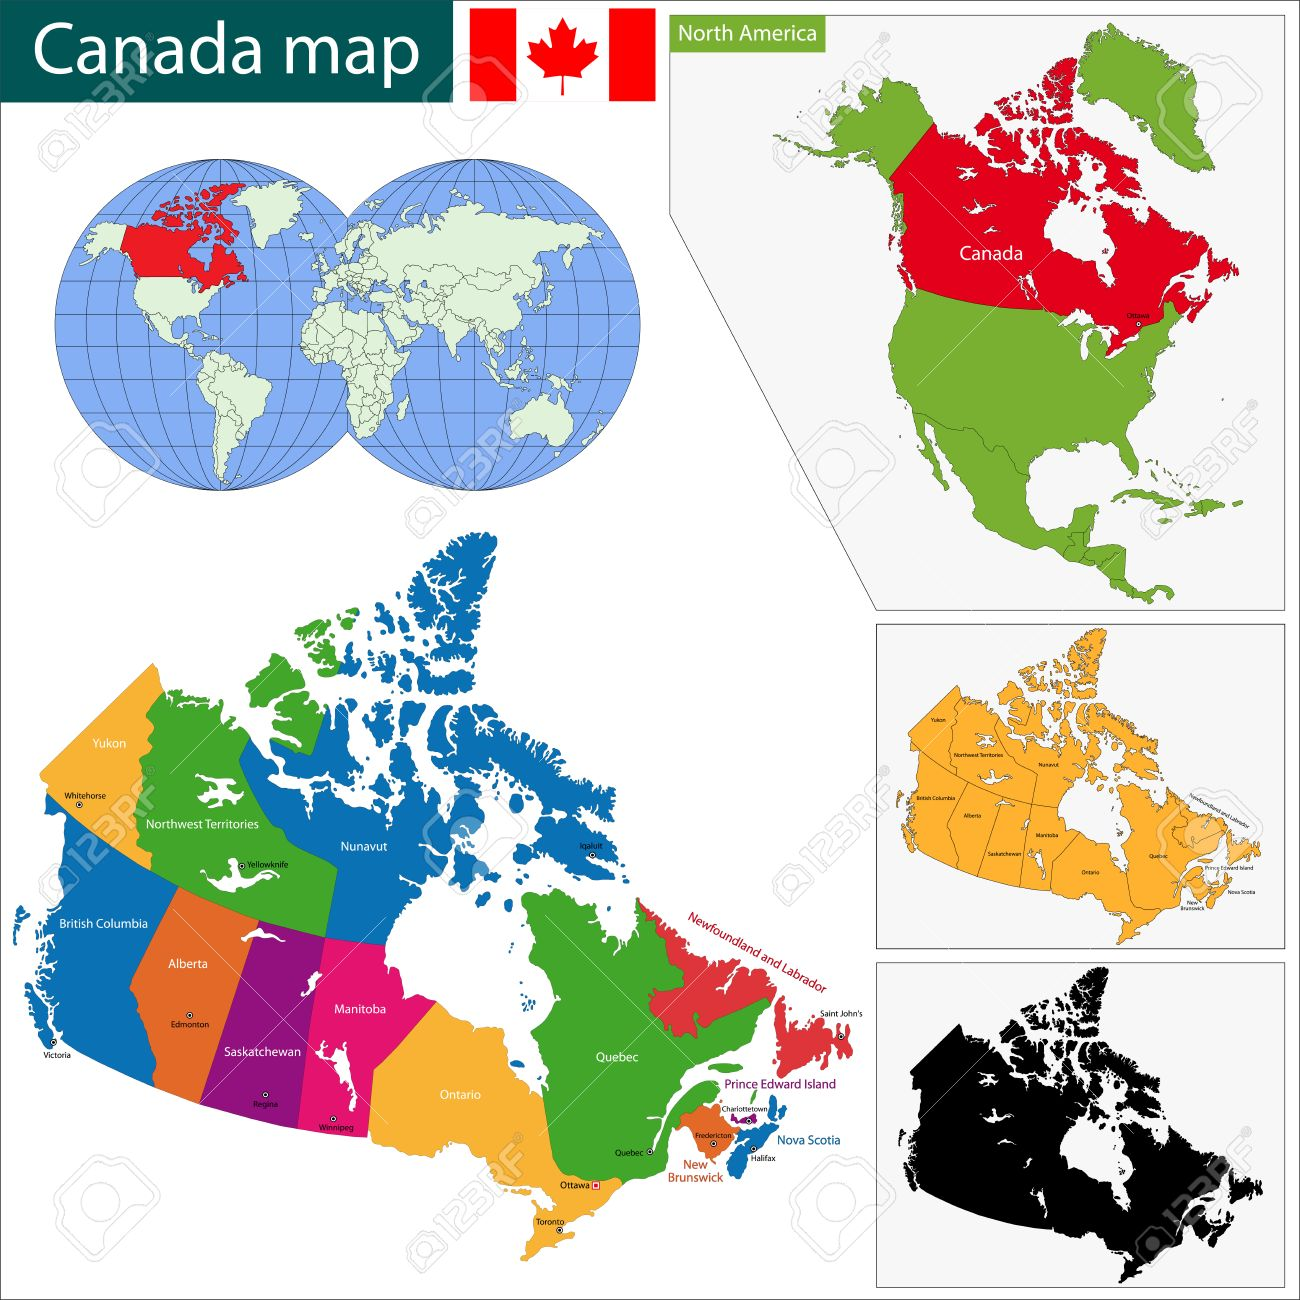 Map Of Canada Capitals And Provinces.Colorful Canada Map With Provinces And Capital Cities